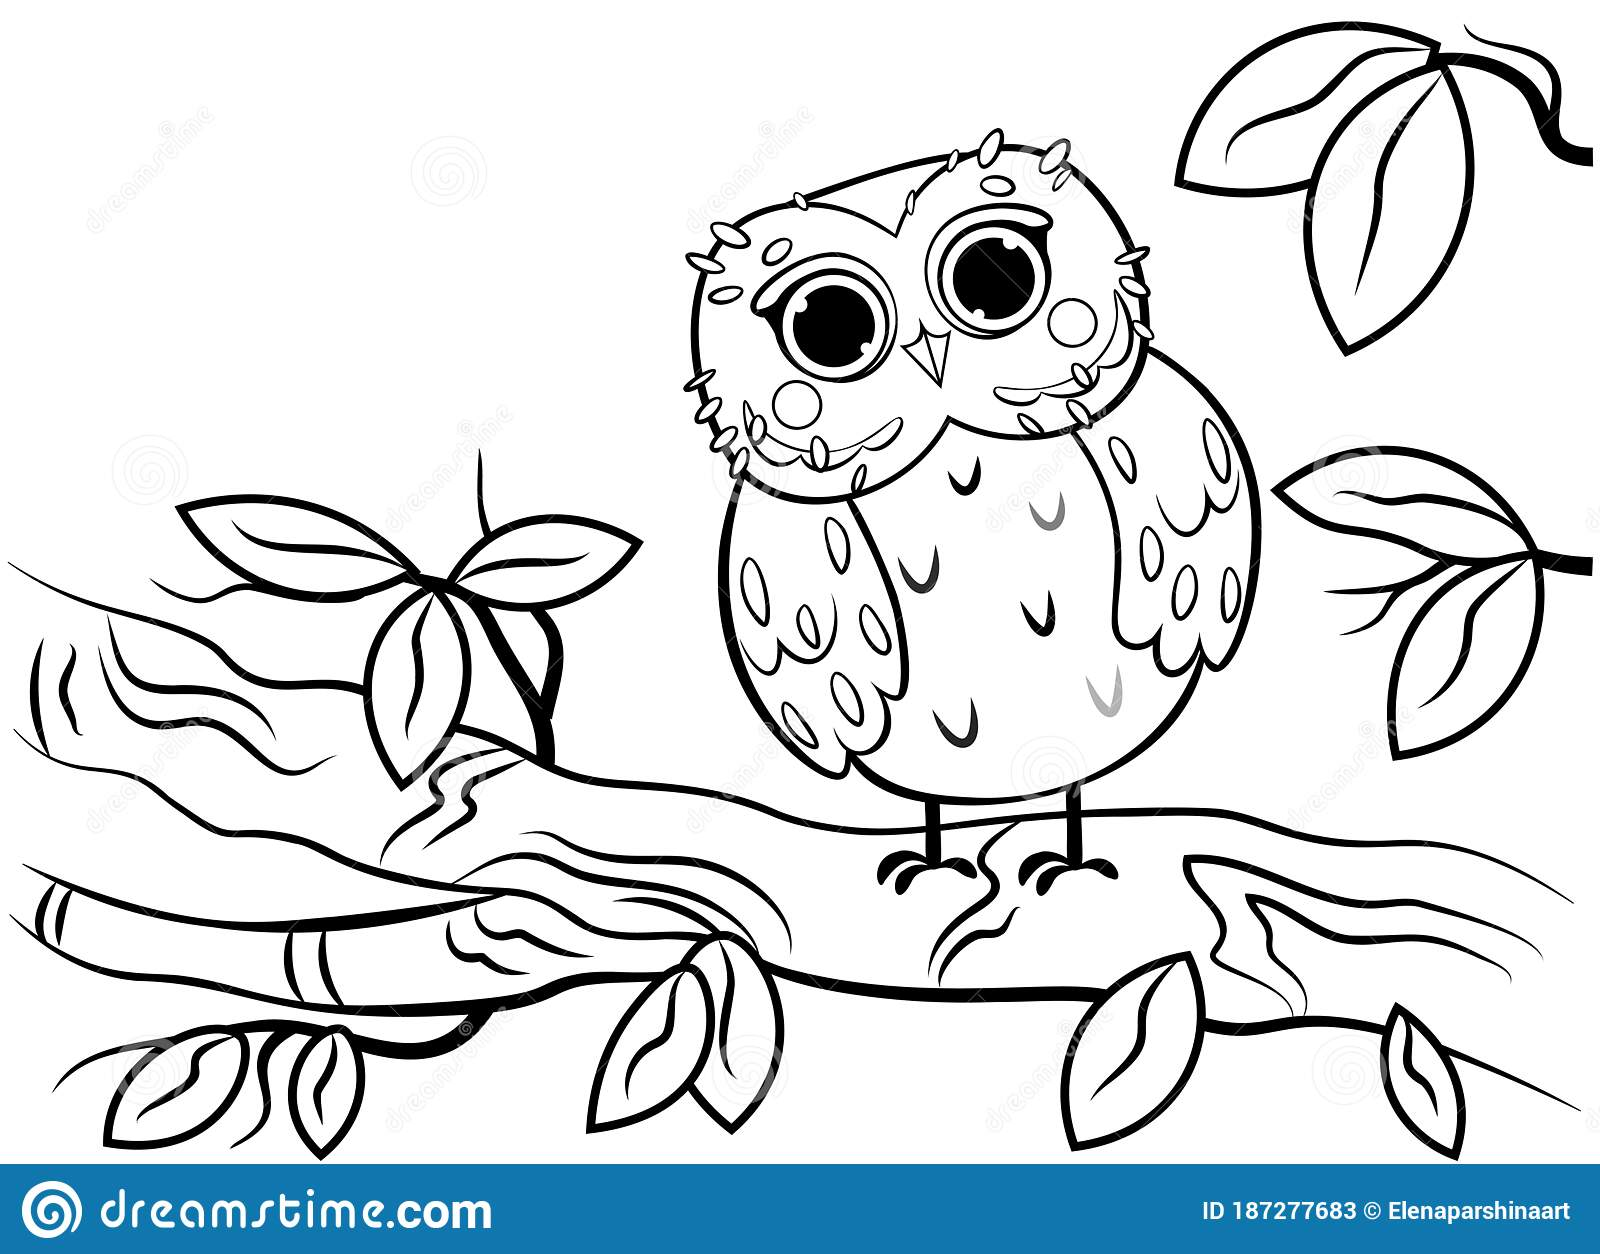 Printable Coloring Page Outline Of Cute Cartoon Owl Sitting On A Tree Branch Vector Image Coloring Book Of Forest Wild Animals Stock Vector Illustration Of Children Contour 187277683